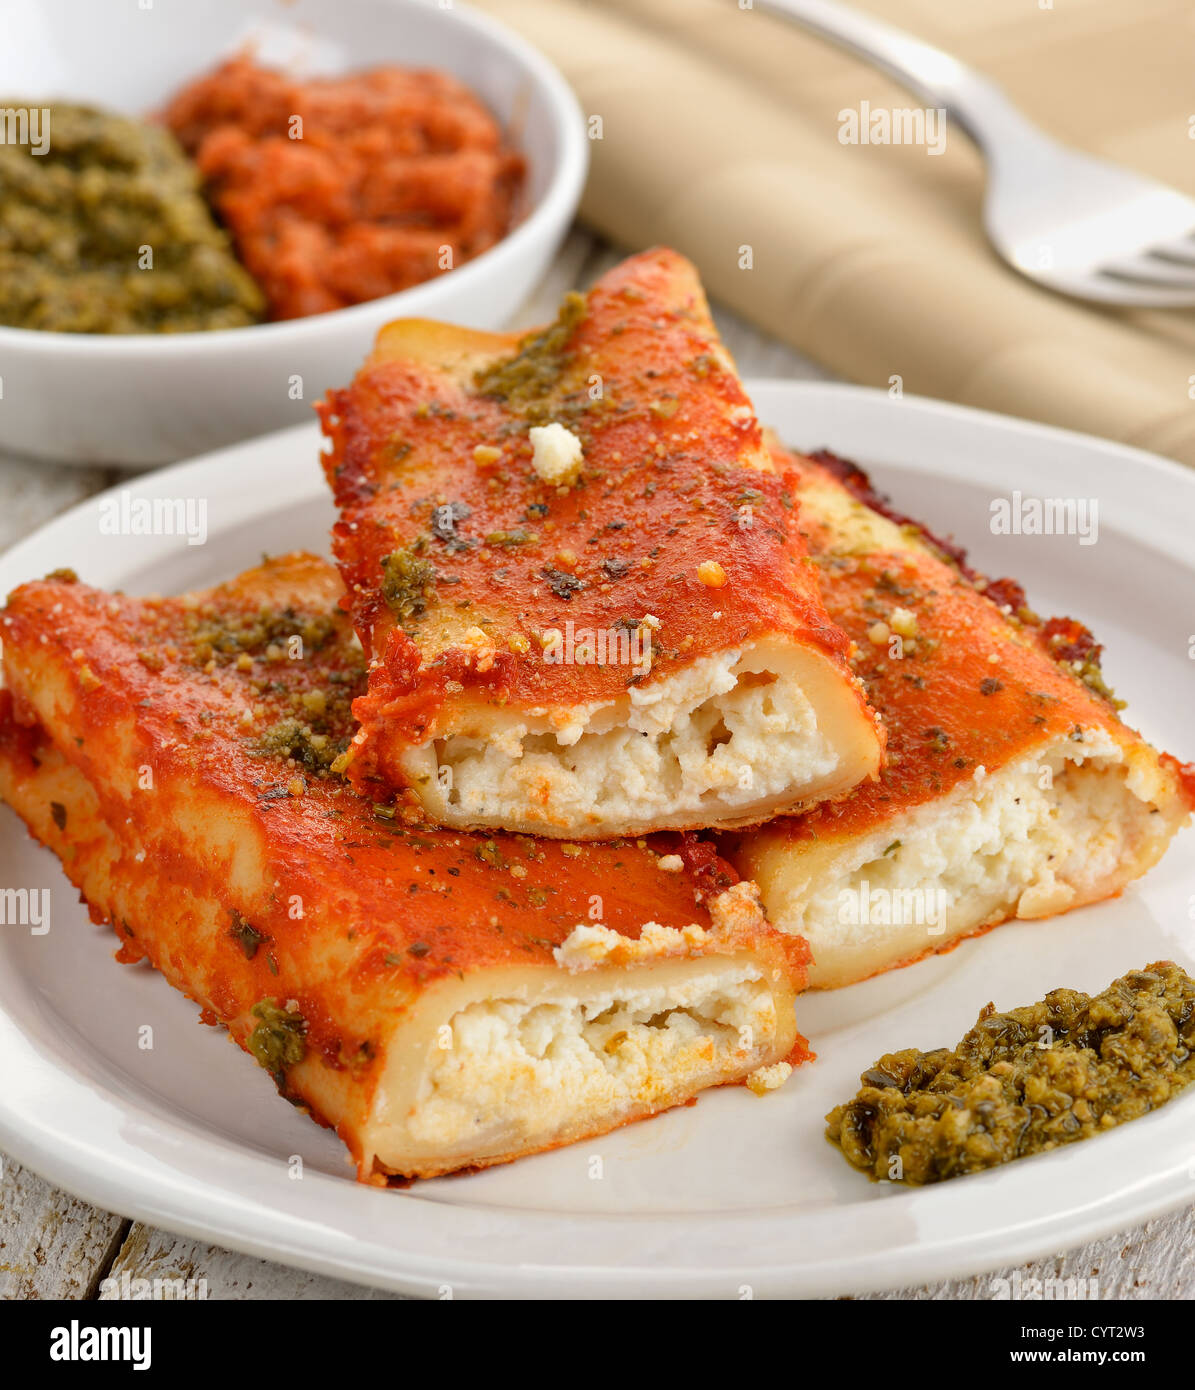 Cannelloni With Cheese , Tomato Sauce And Basil Pesto - Stock Image